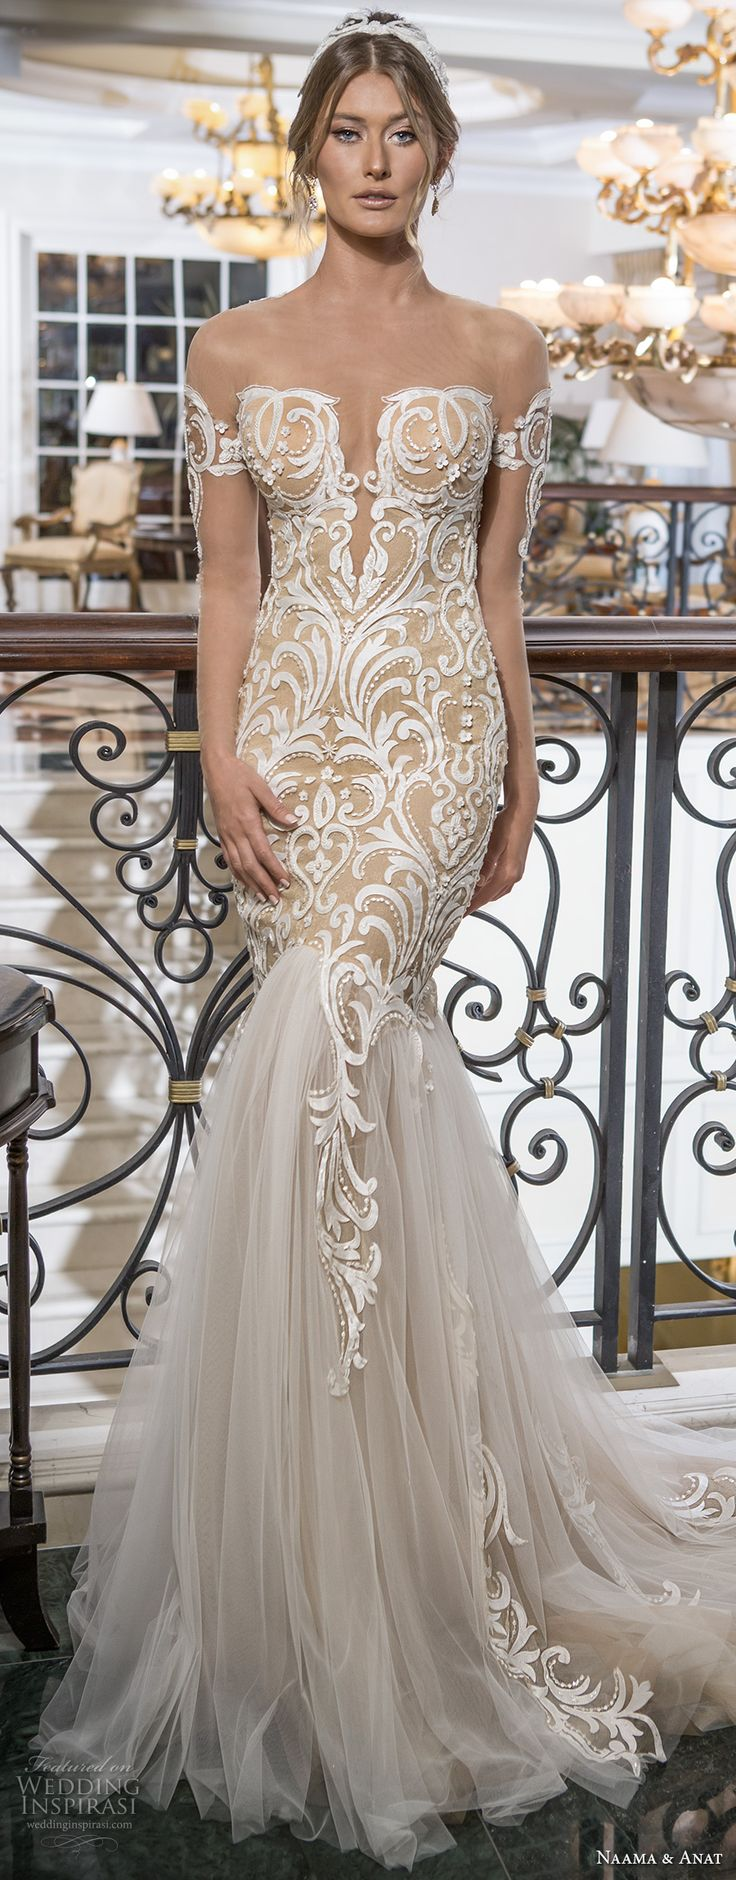 naama and anat 2018 bridal off the shoulder deep plunging sweetheart neckline heavily embroidered bodice tulle skirt gold glamorous mermaid wedding dress lace back chapel train (sensual) mv -- Naama